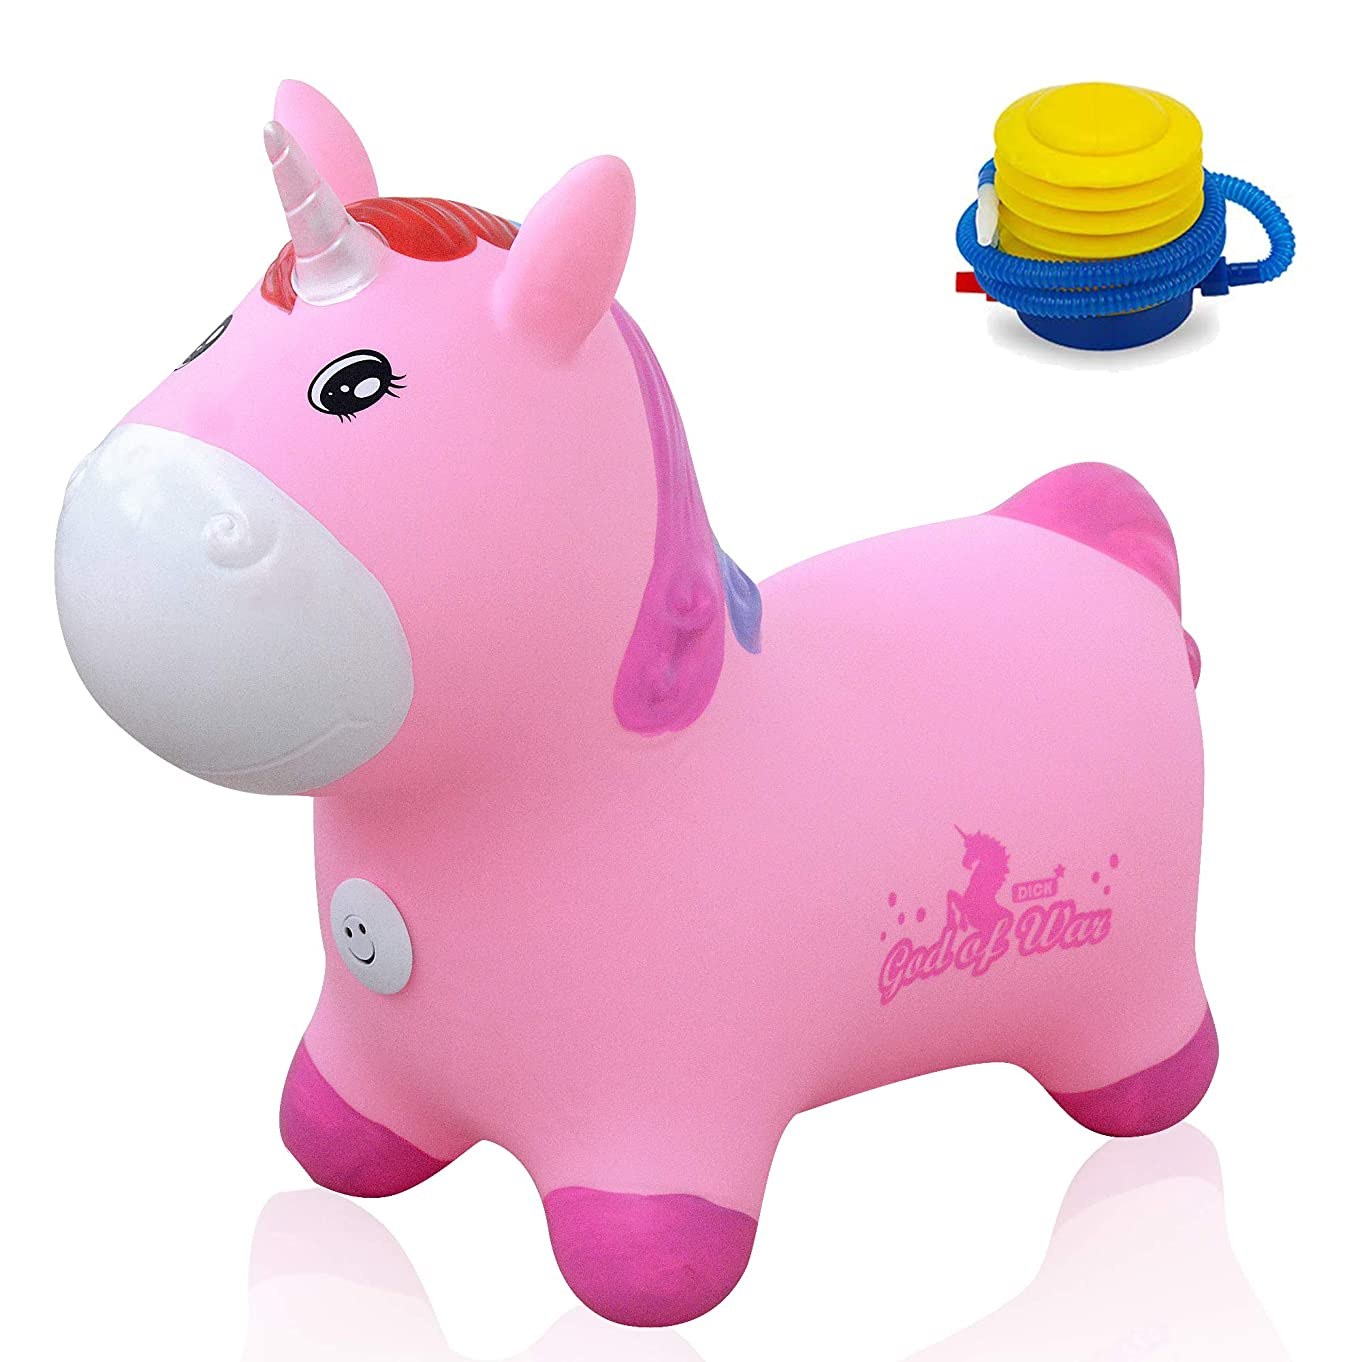 Bouncy Unicorn Hopper Ball Unicorn Hopper Inflatable Animal Ride-on Toy for Children Eco-Friendly +Free Foot Pump(Pink)